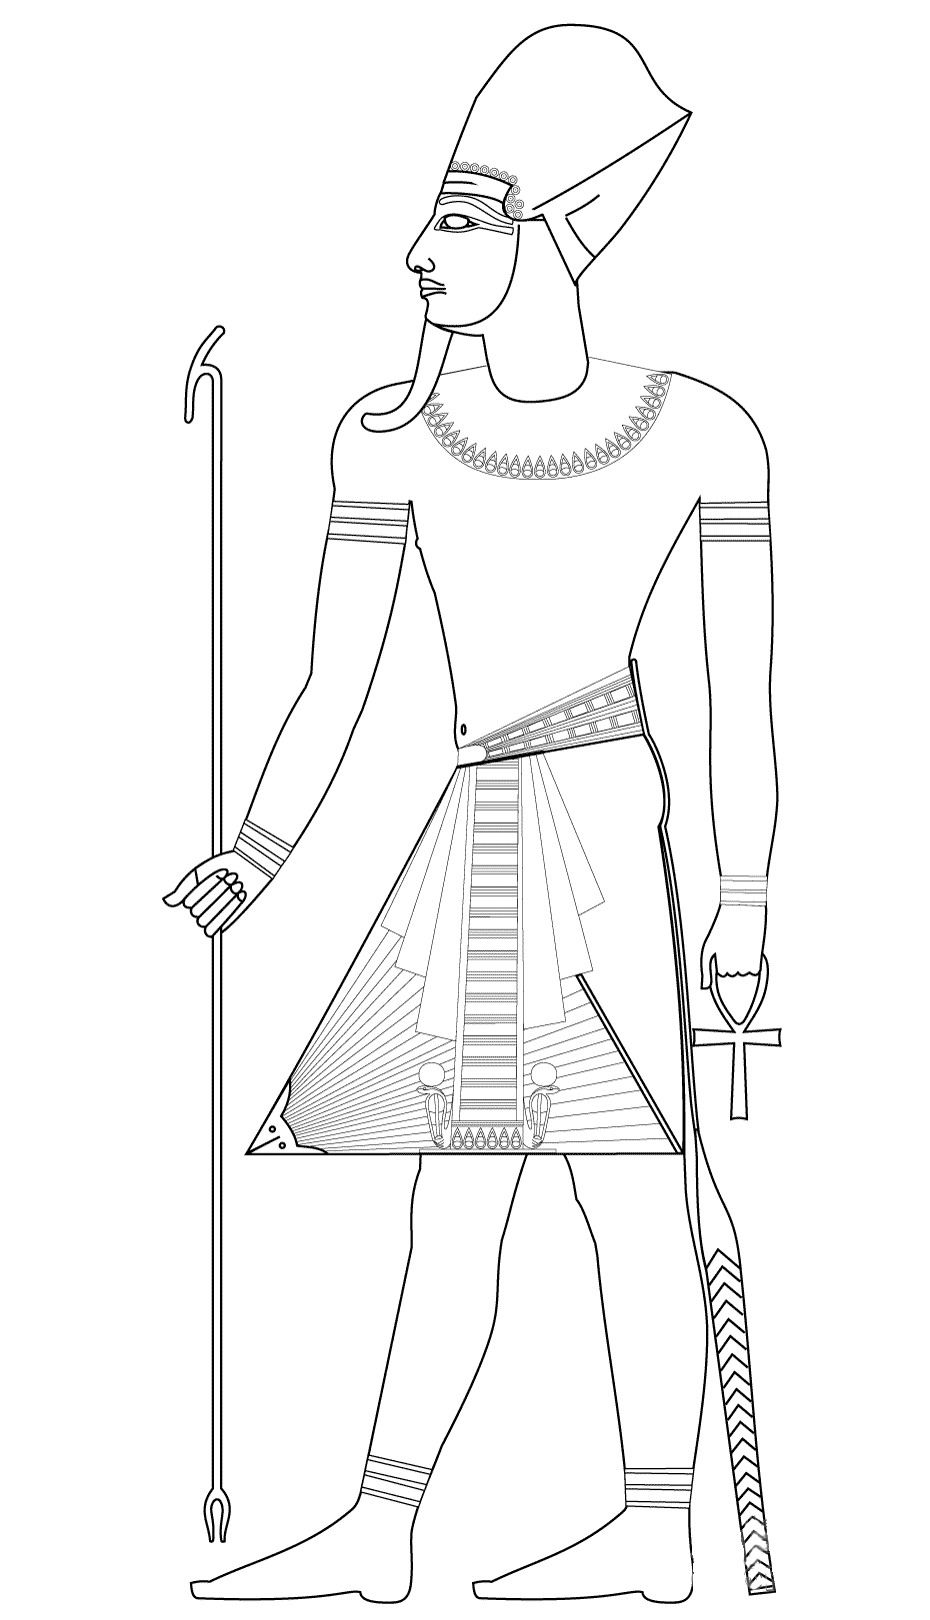 Egypt to color for children Egypt Coloring pages for kids